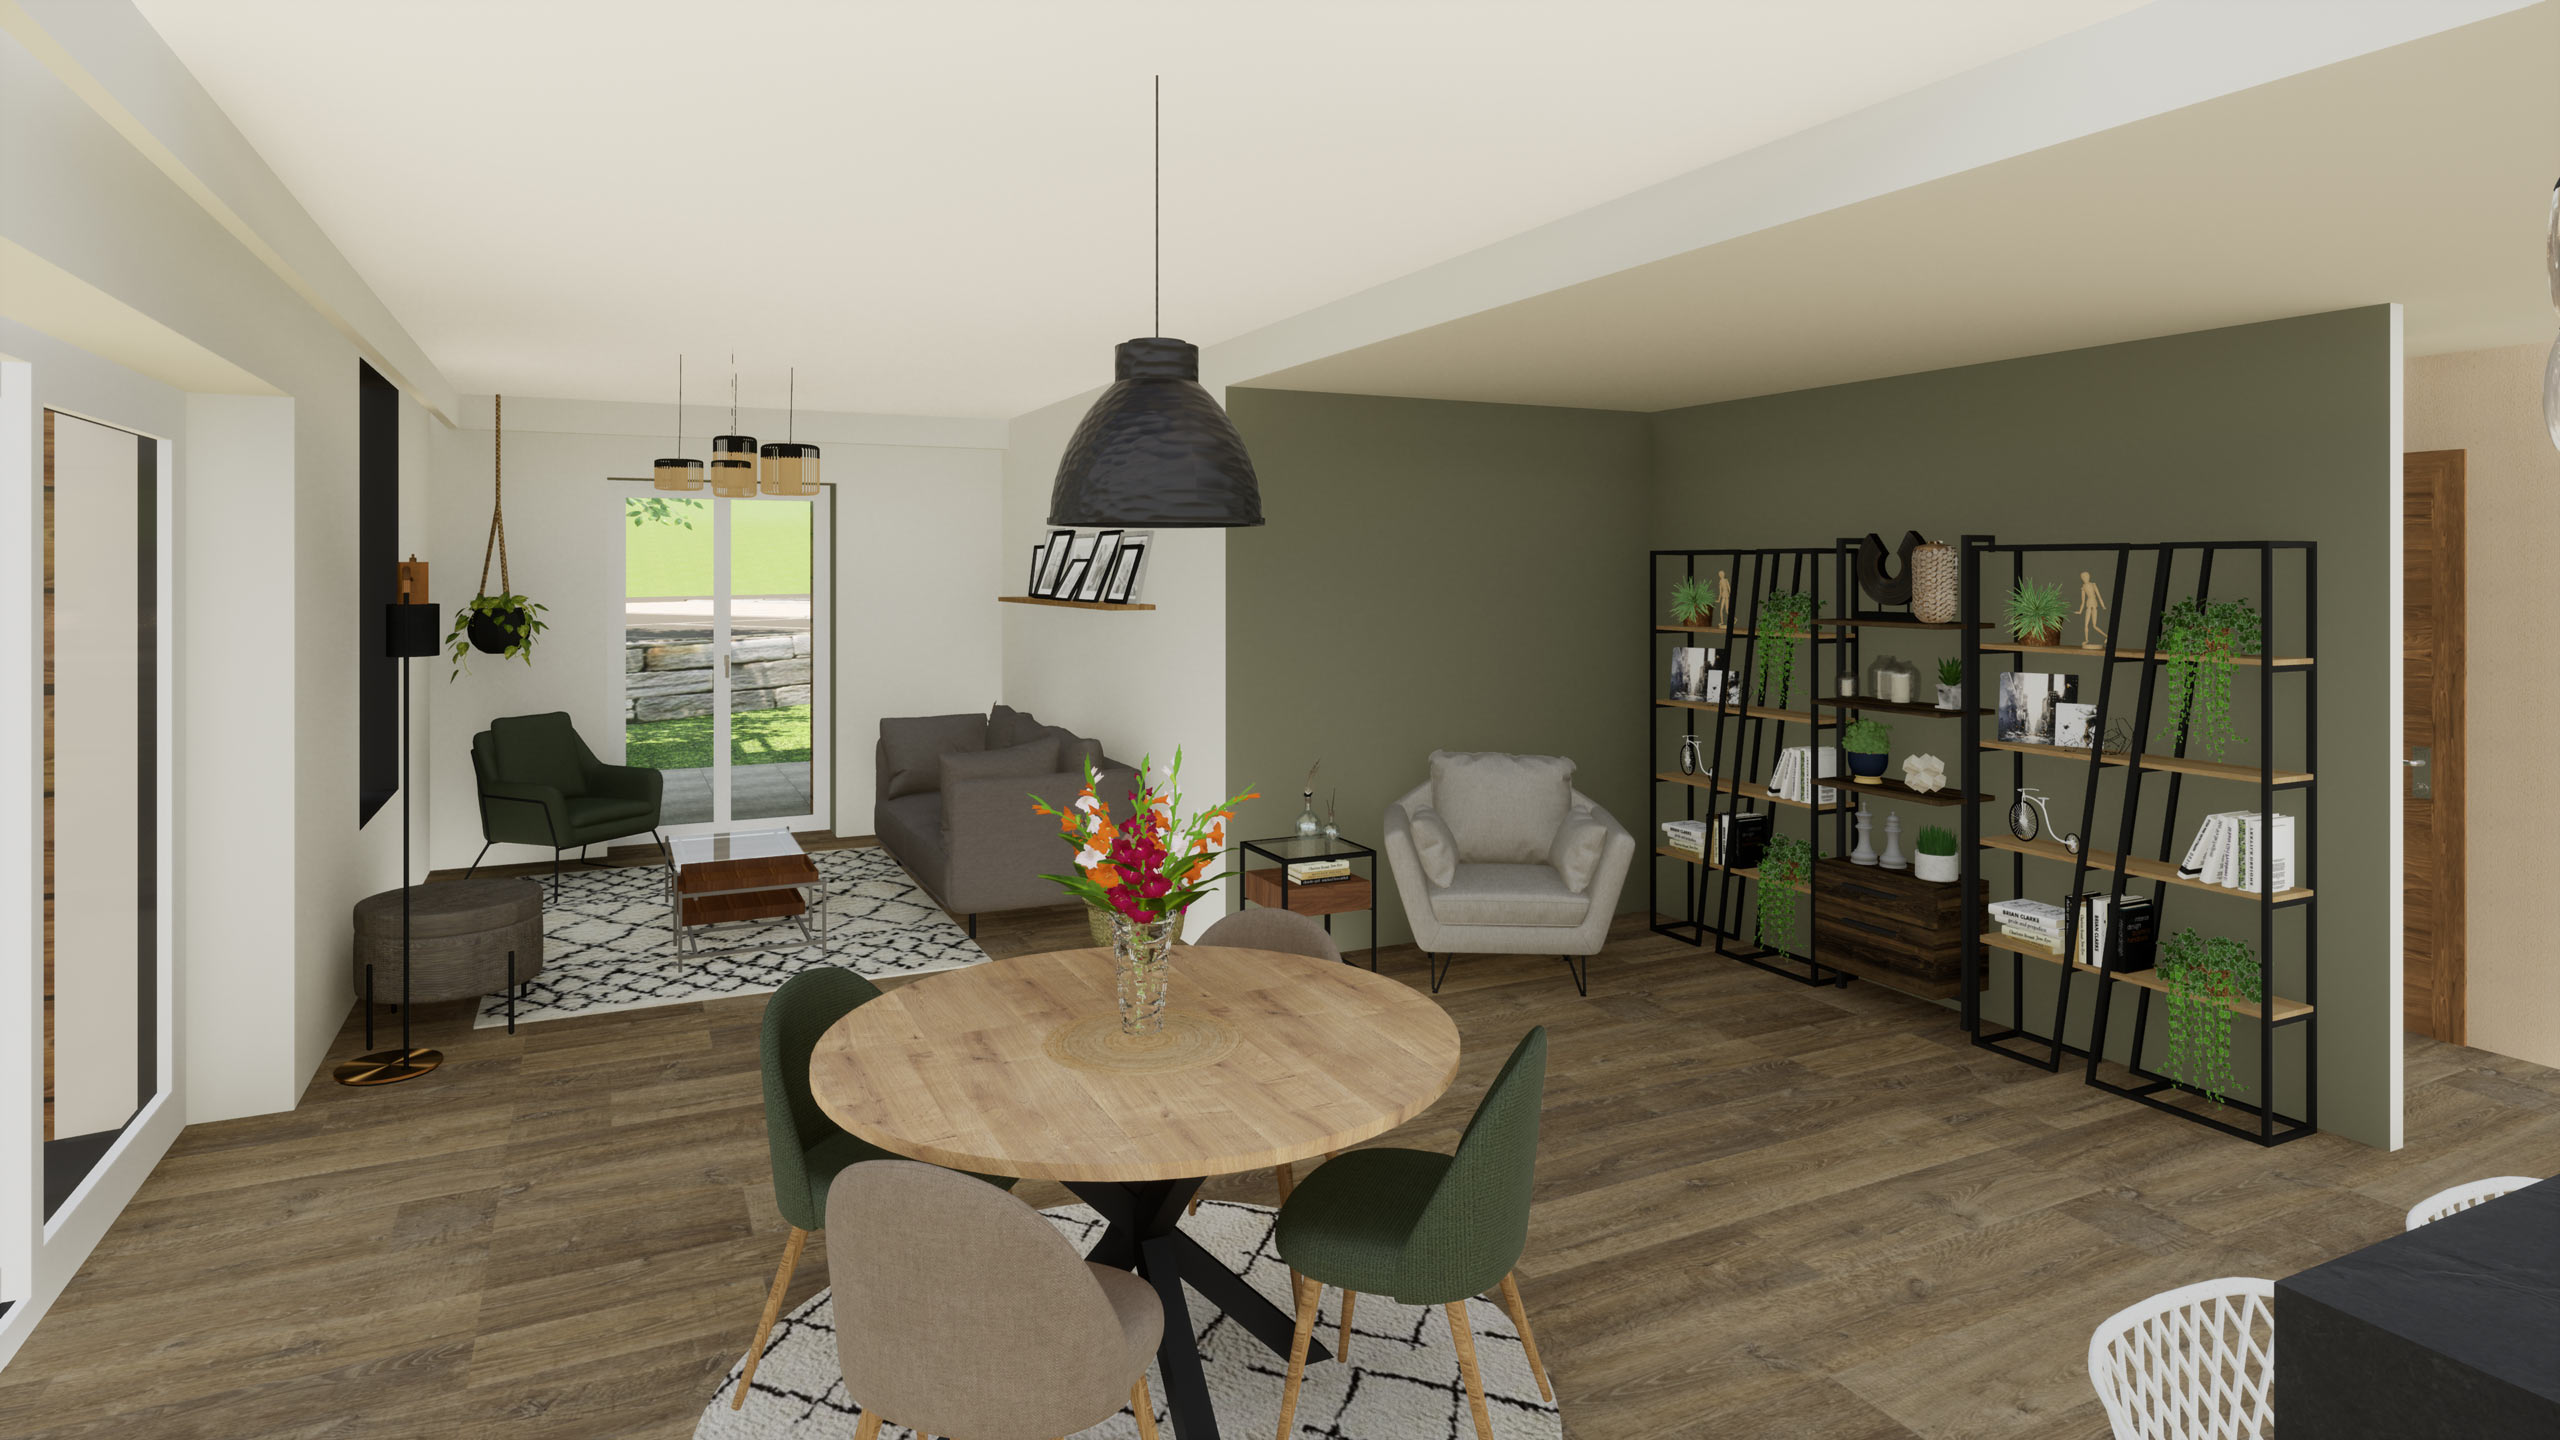 Appartement F2/F3